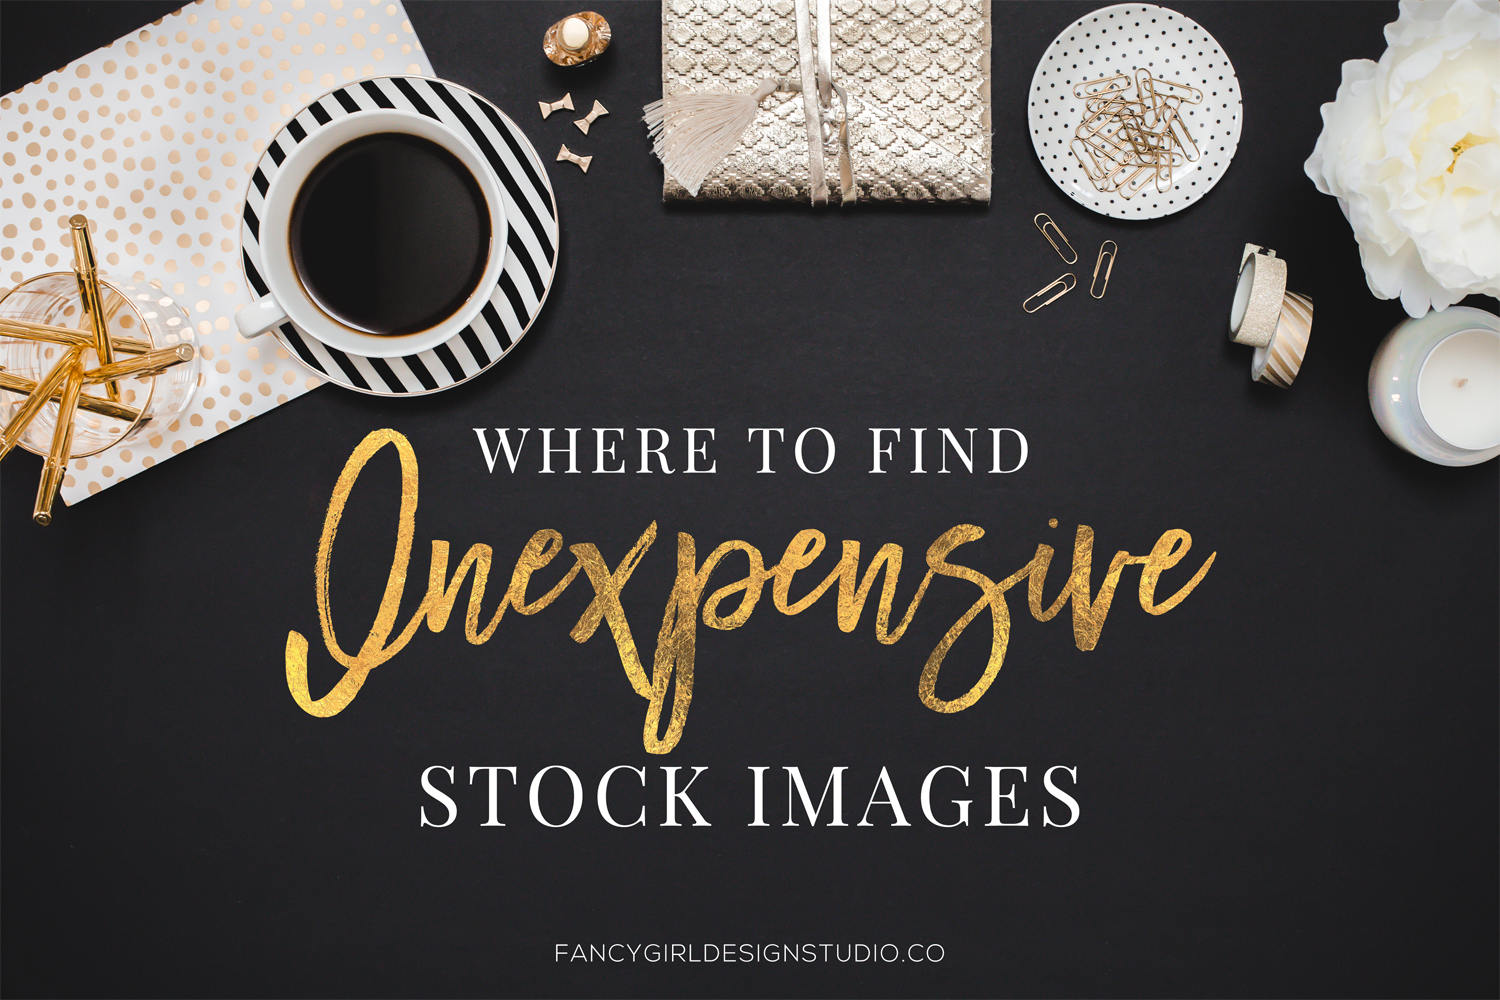 coverphoto-inexpensivestock